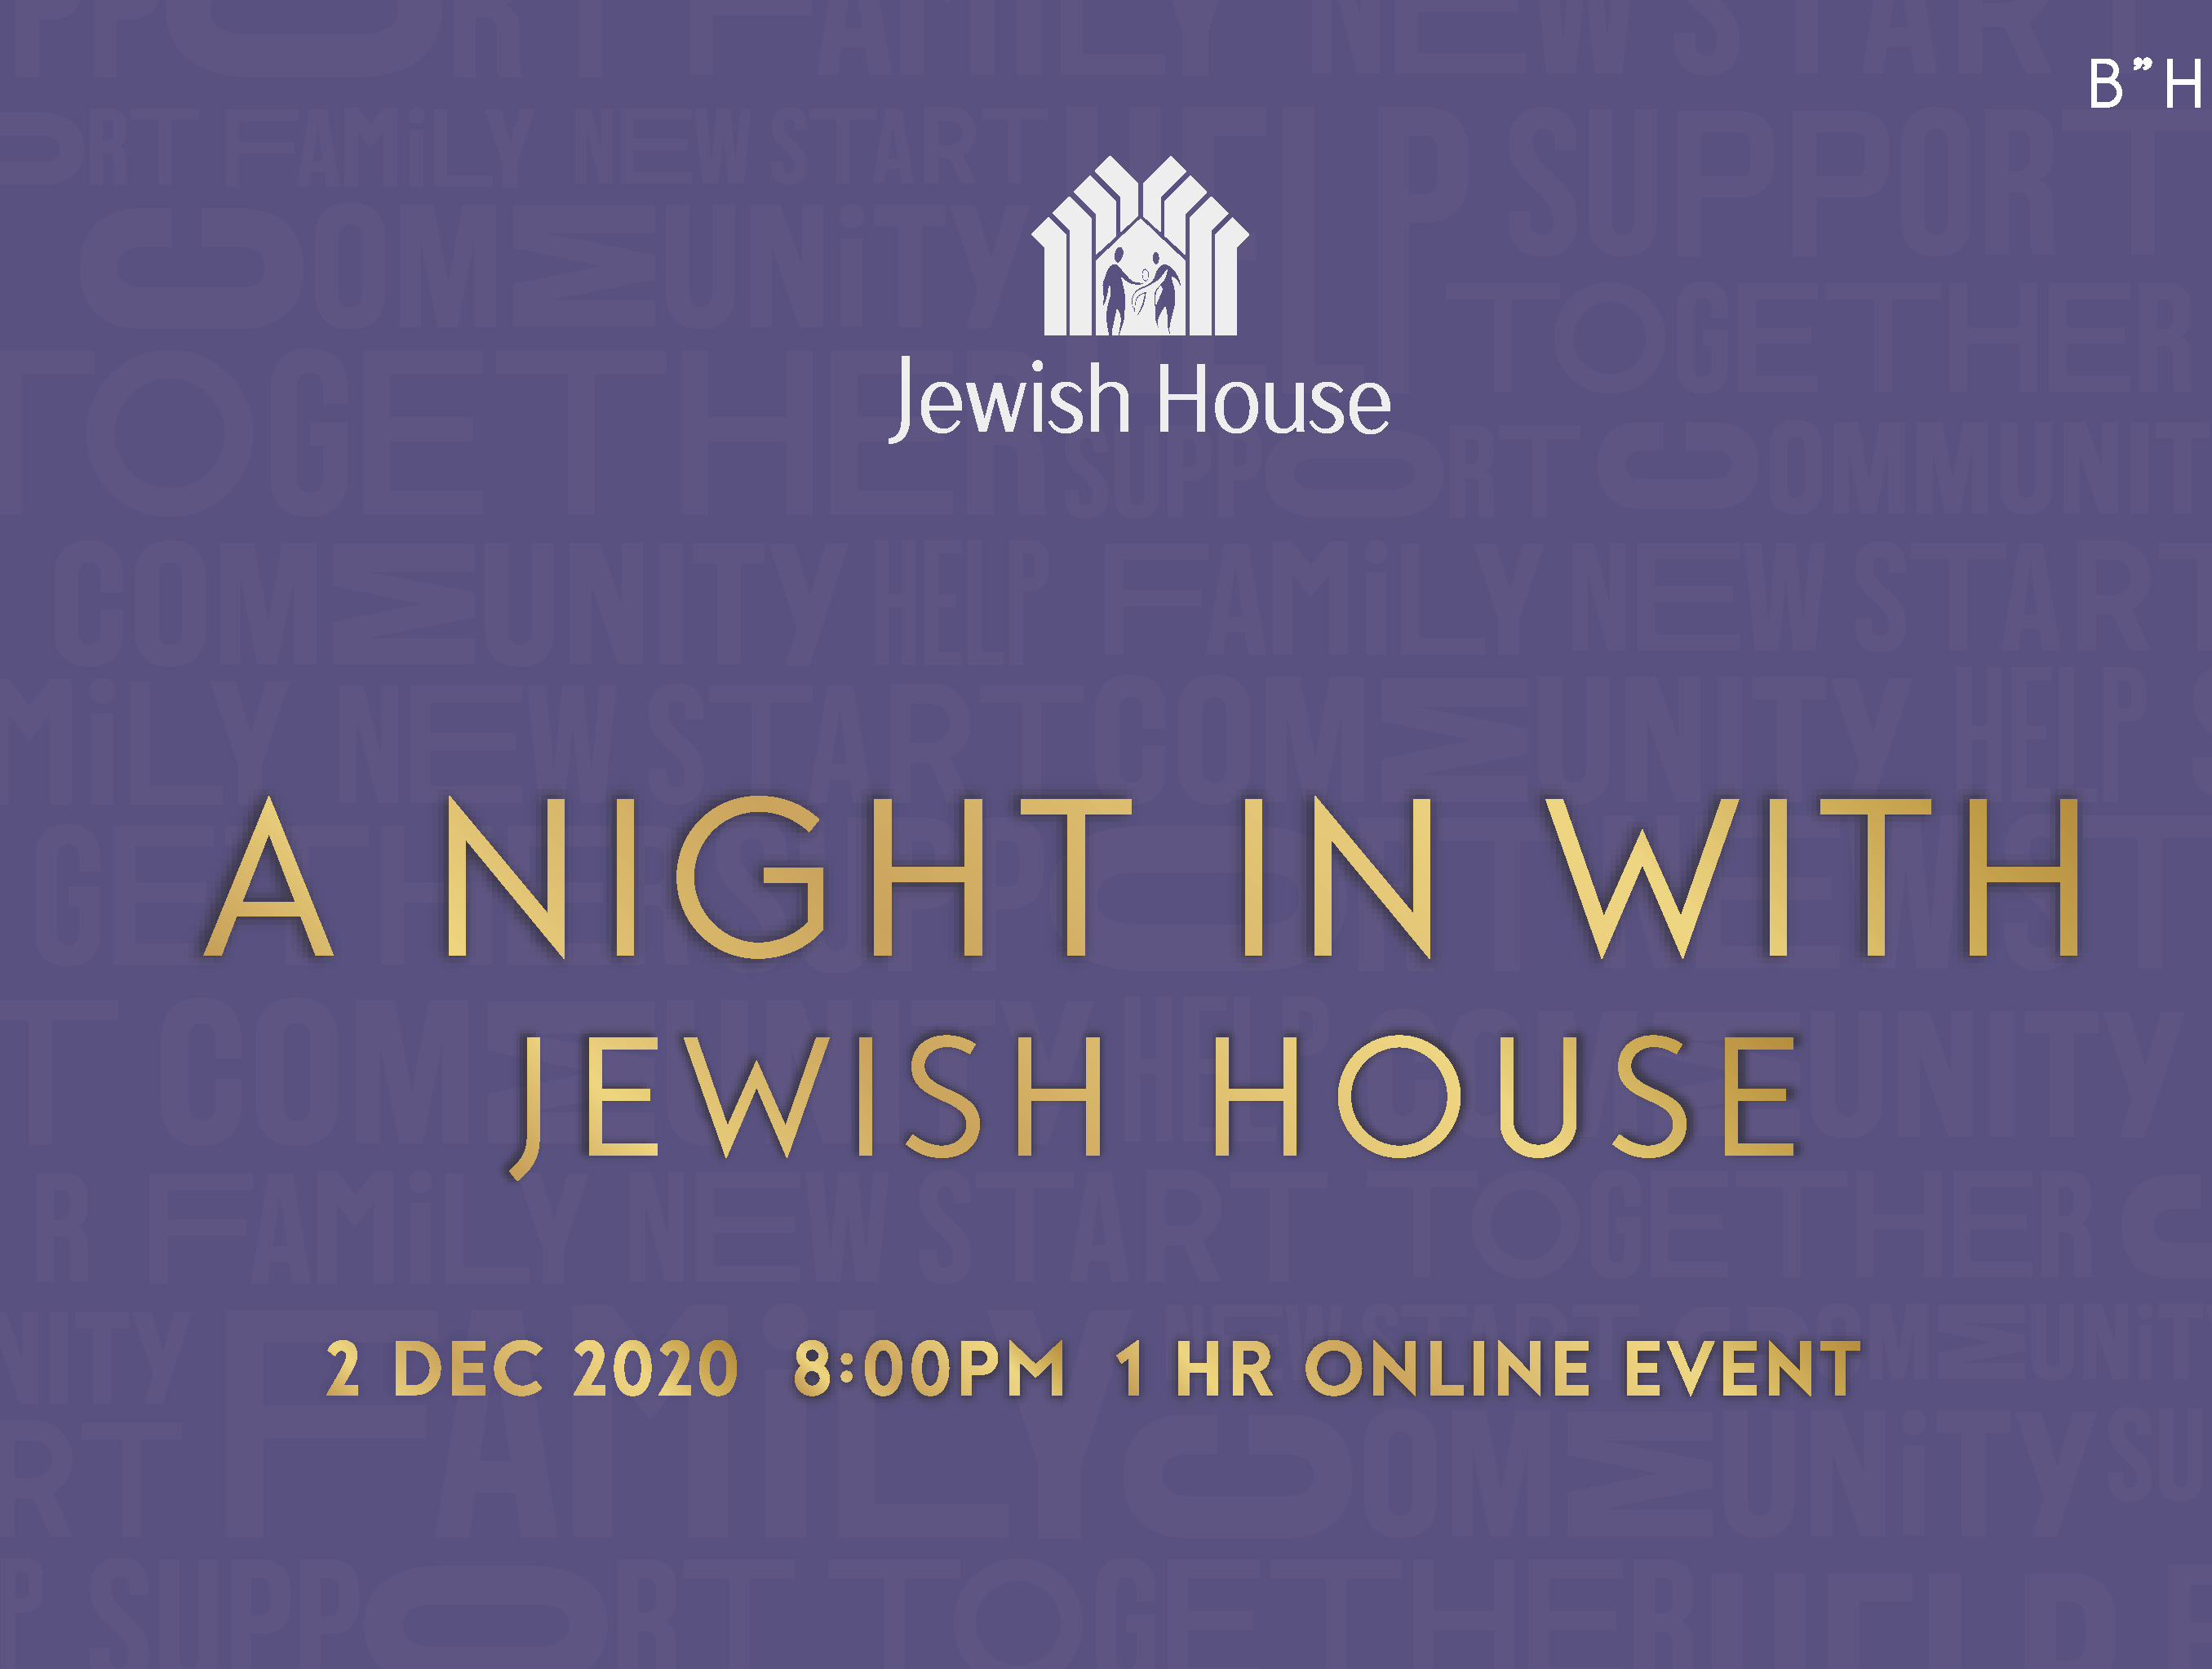 A Night in with Jewish House